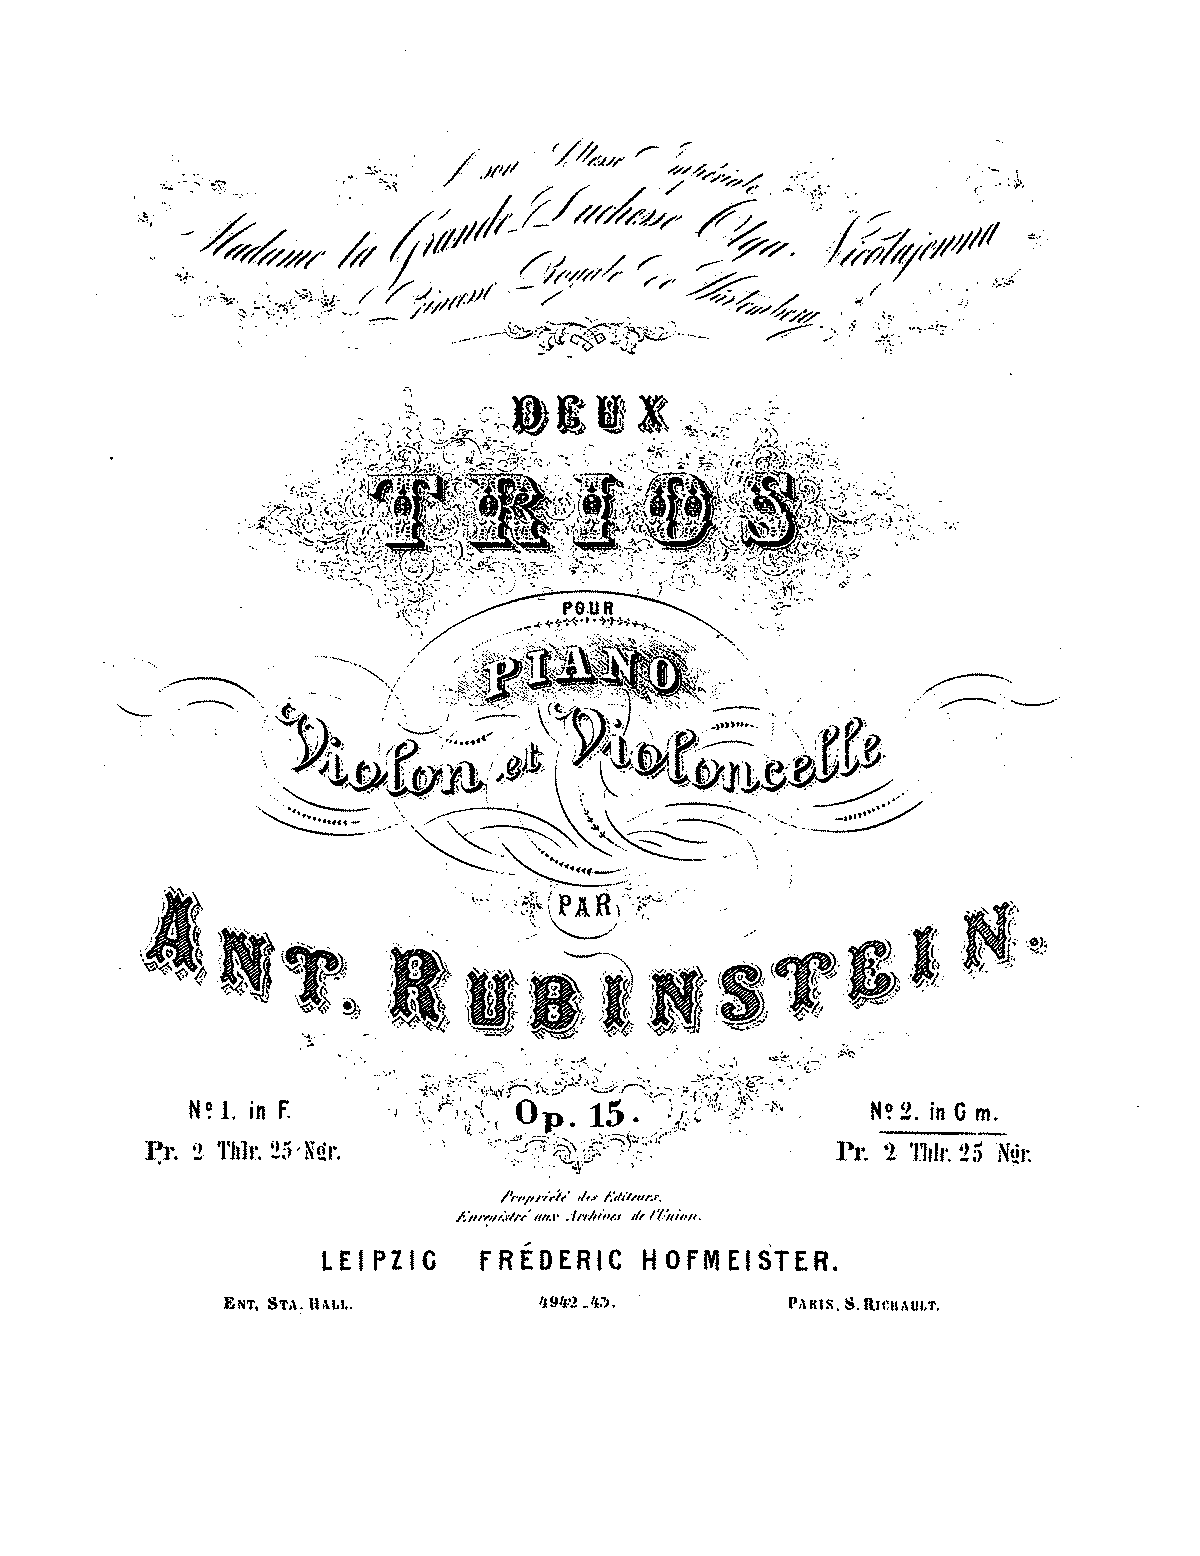 PMLP125069-Rubinstein.A - Piano Trio No2 Op15 in G minor piano.pdf